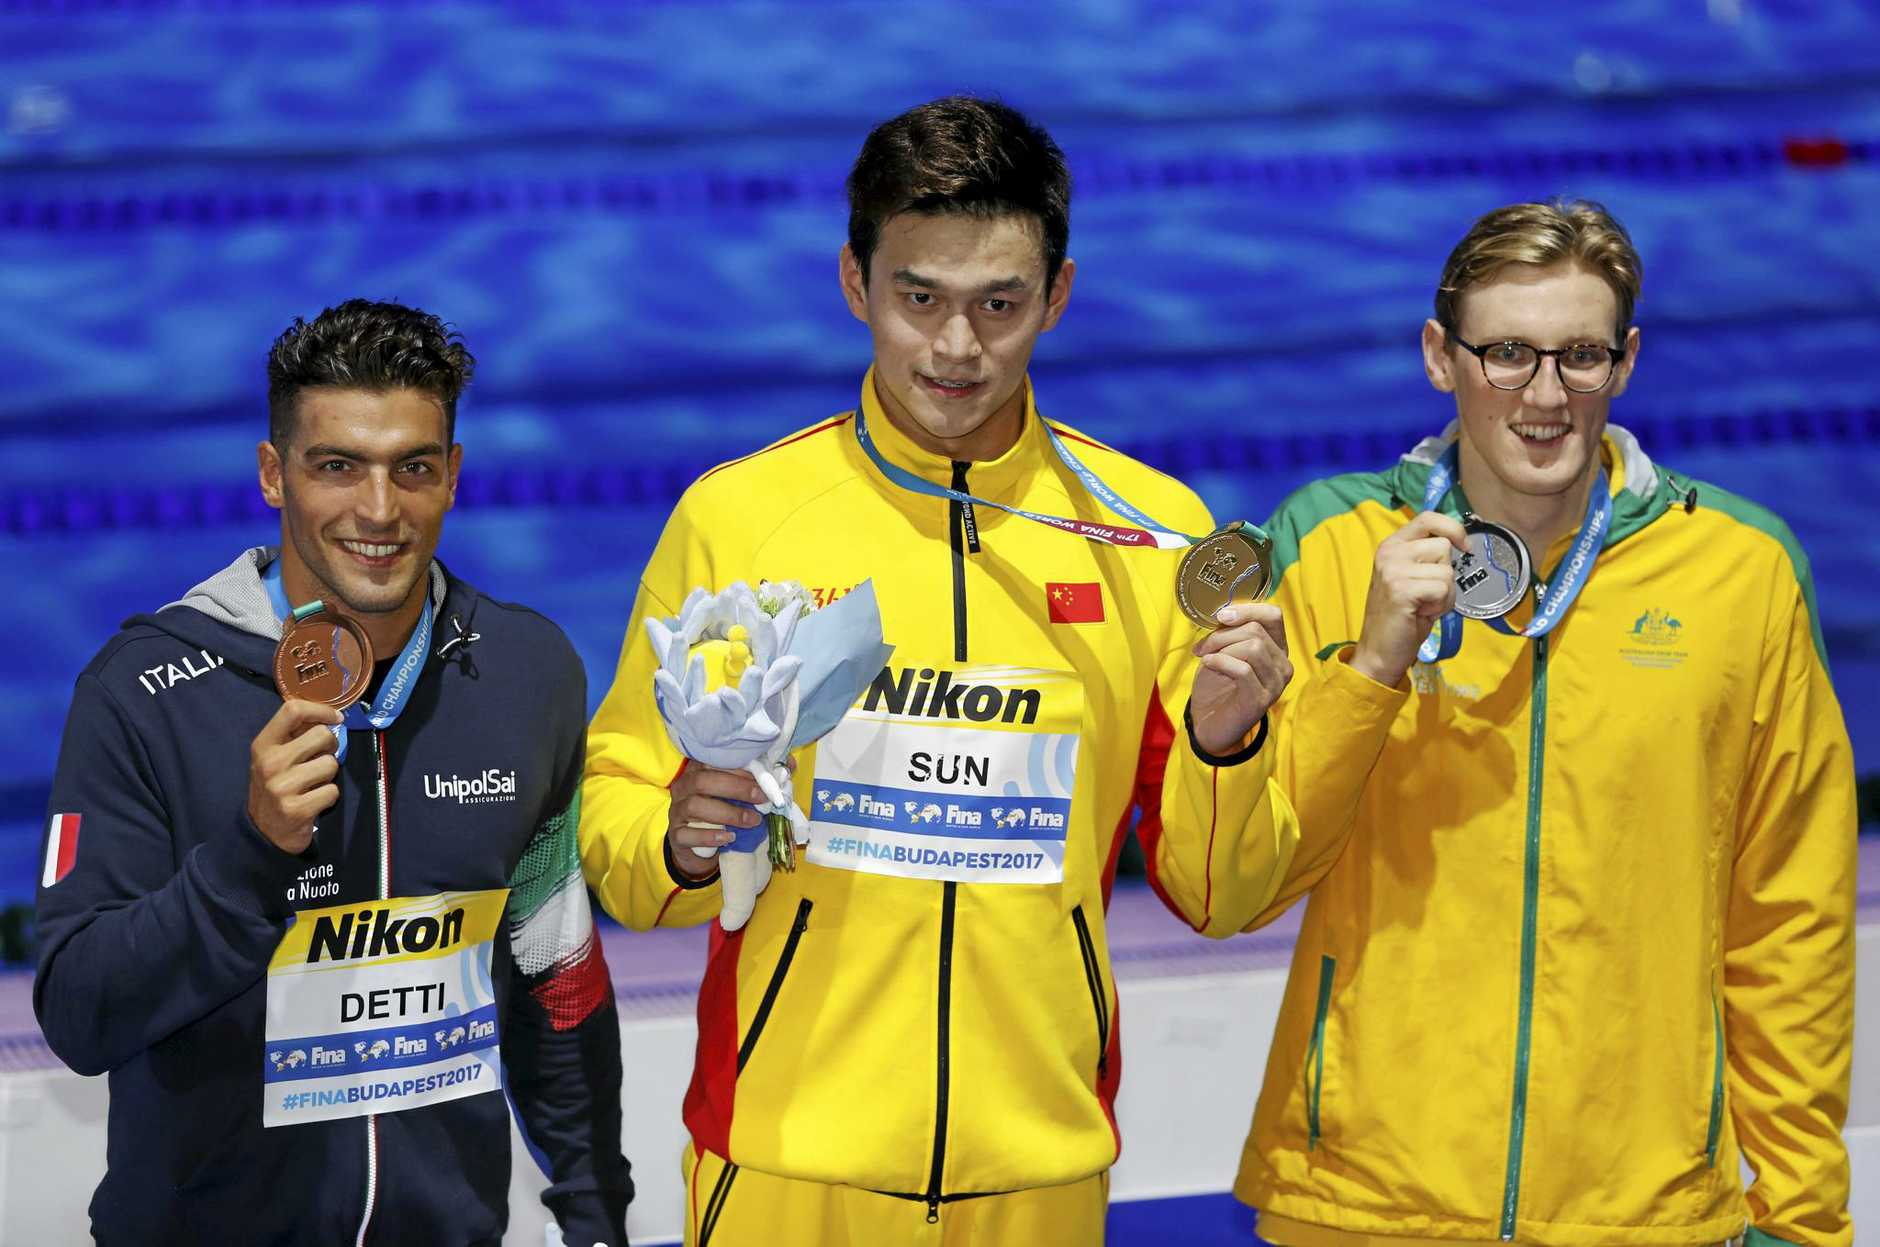 MEDAL WINNERS: China's gold medal winner Sun Yang, flanked by Italy's bronze medal winner Gabriele Detti (left) and Australia's silver medal winner Mack Horton celebrate after the men's 400-meter freestyle final during the world championships in Budapest, Hungary.